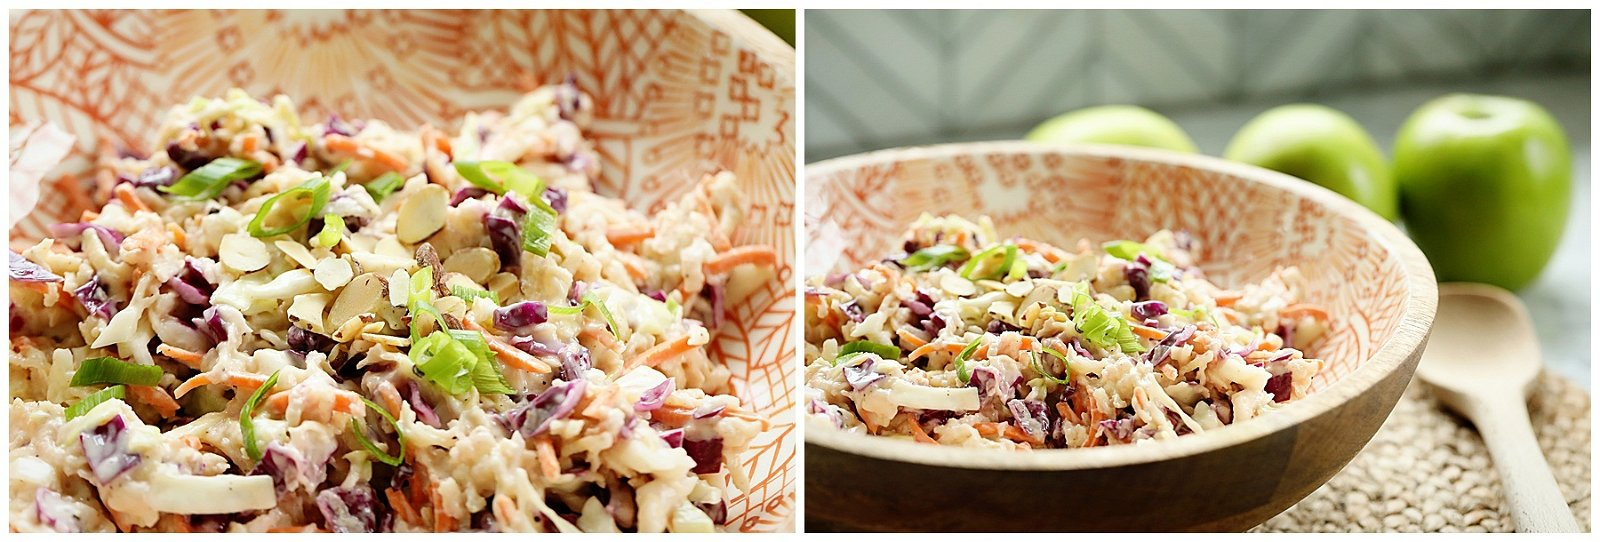 Crunchy Apple Coleslaw